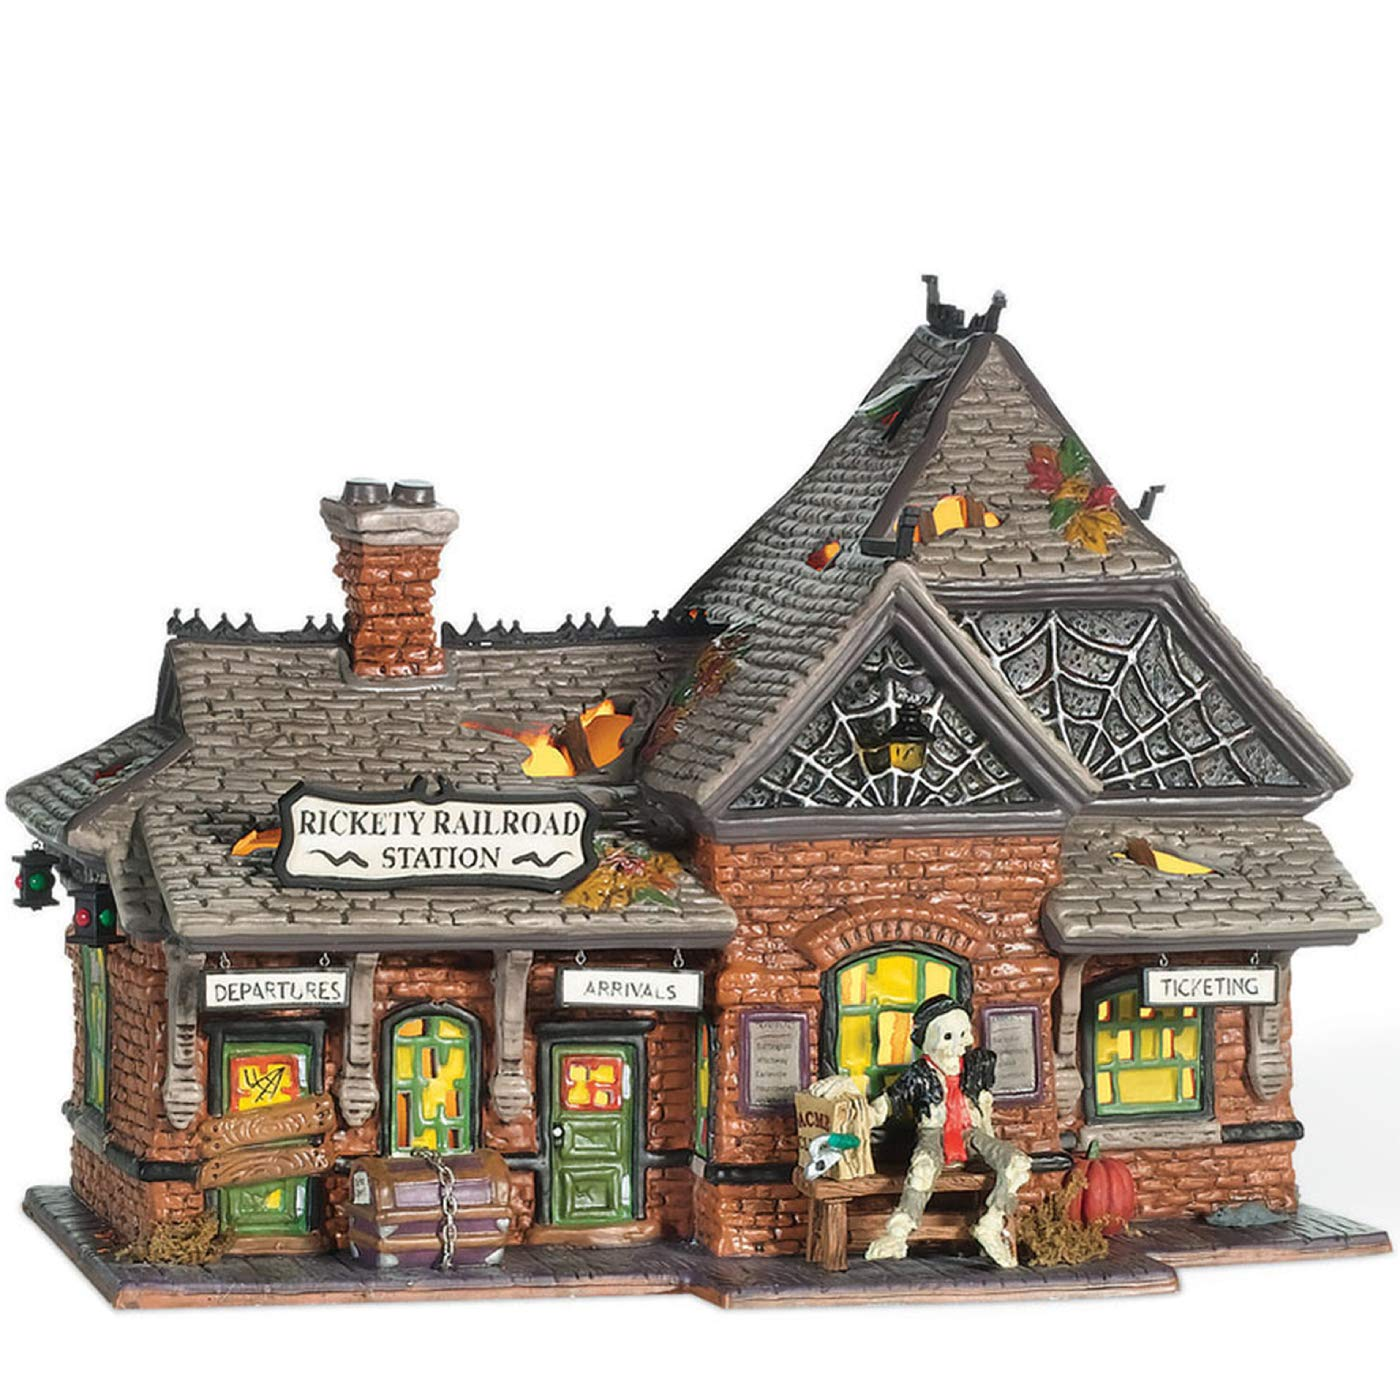 Department 56 Snow Village Halloween Rickety Railroad Station Lit Building, 8 Inch, Multicolor by Department 56